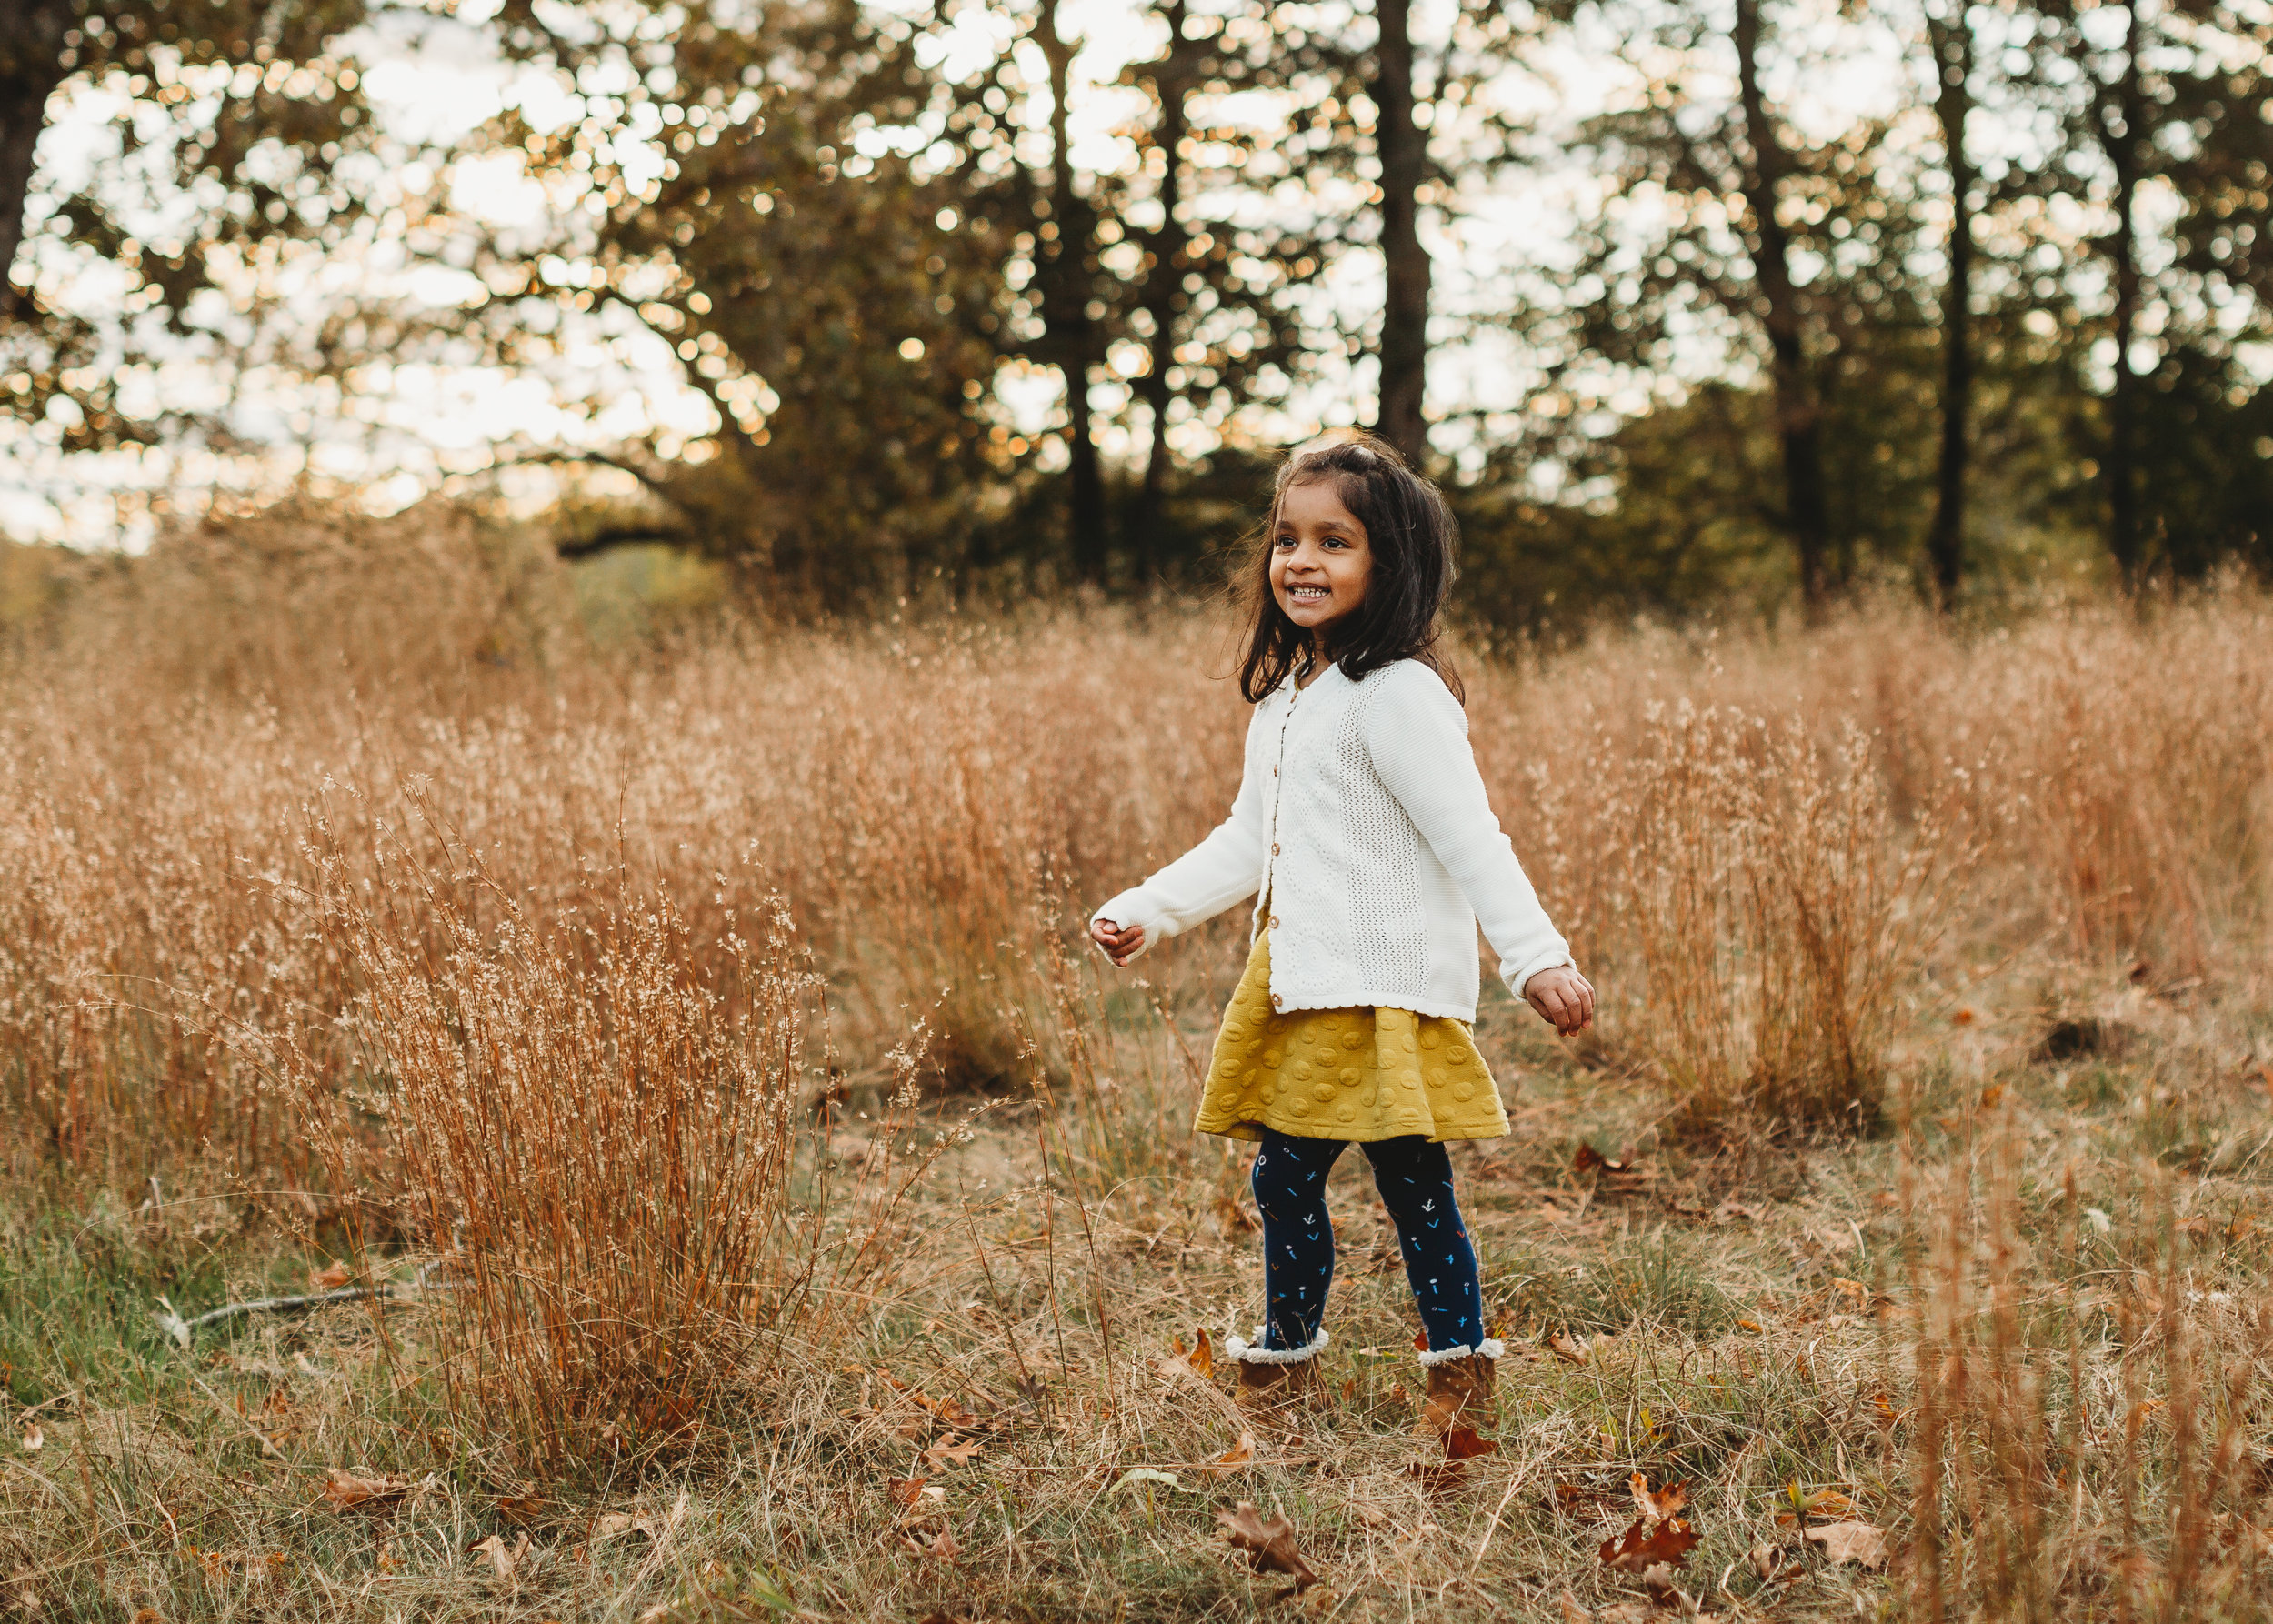 Movement helps children to stay happy and engaged during family photo sessions. Concord, Massachusetts golden hour photography. Boston family portraits.